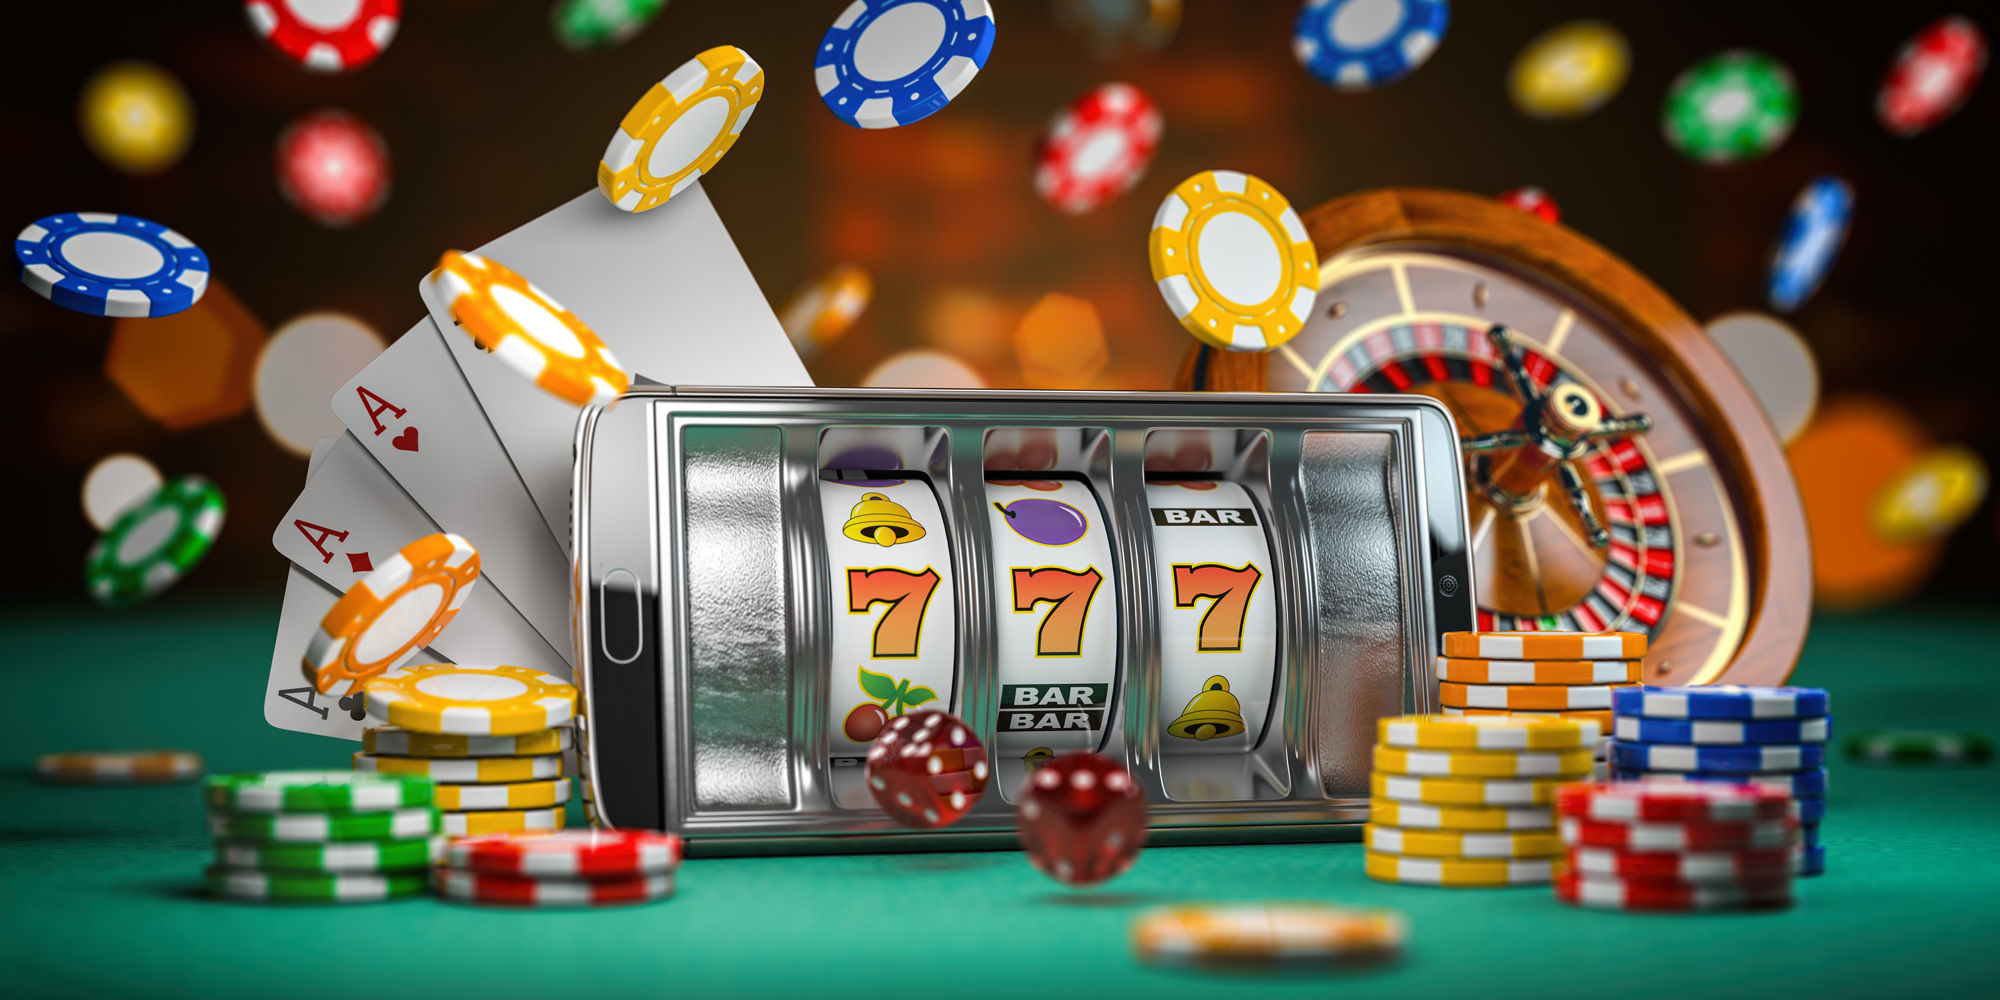 Where Curacao Gaming License Differs from Malta's